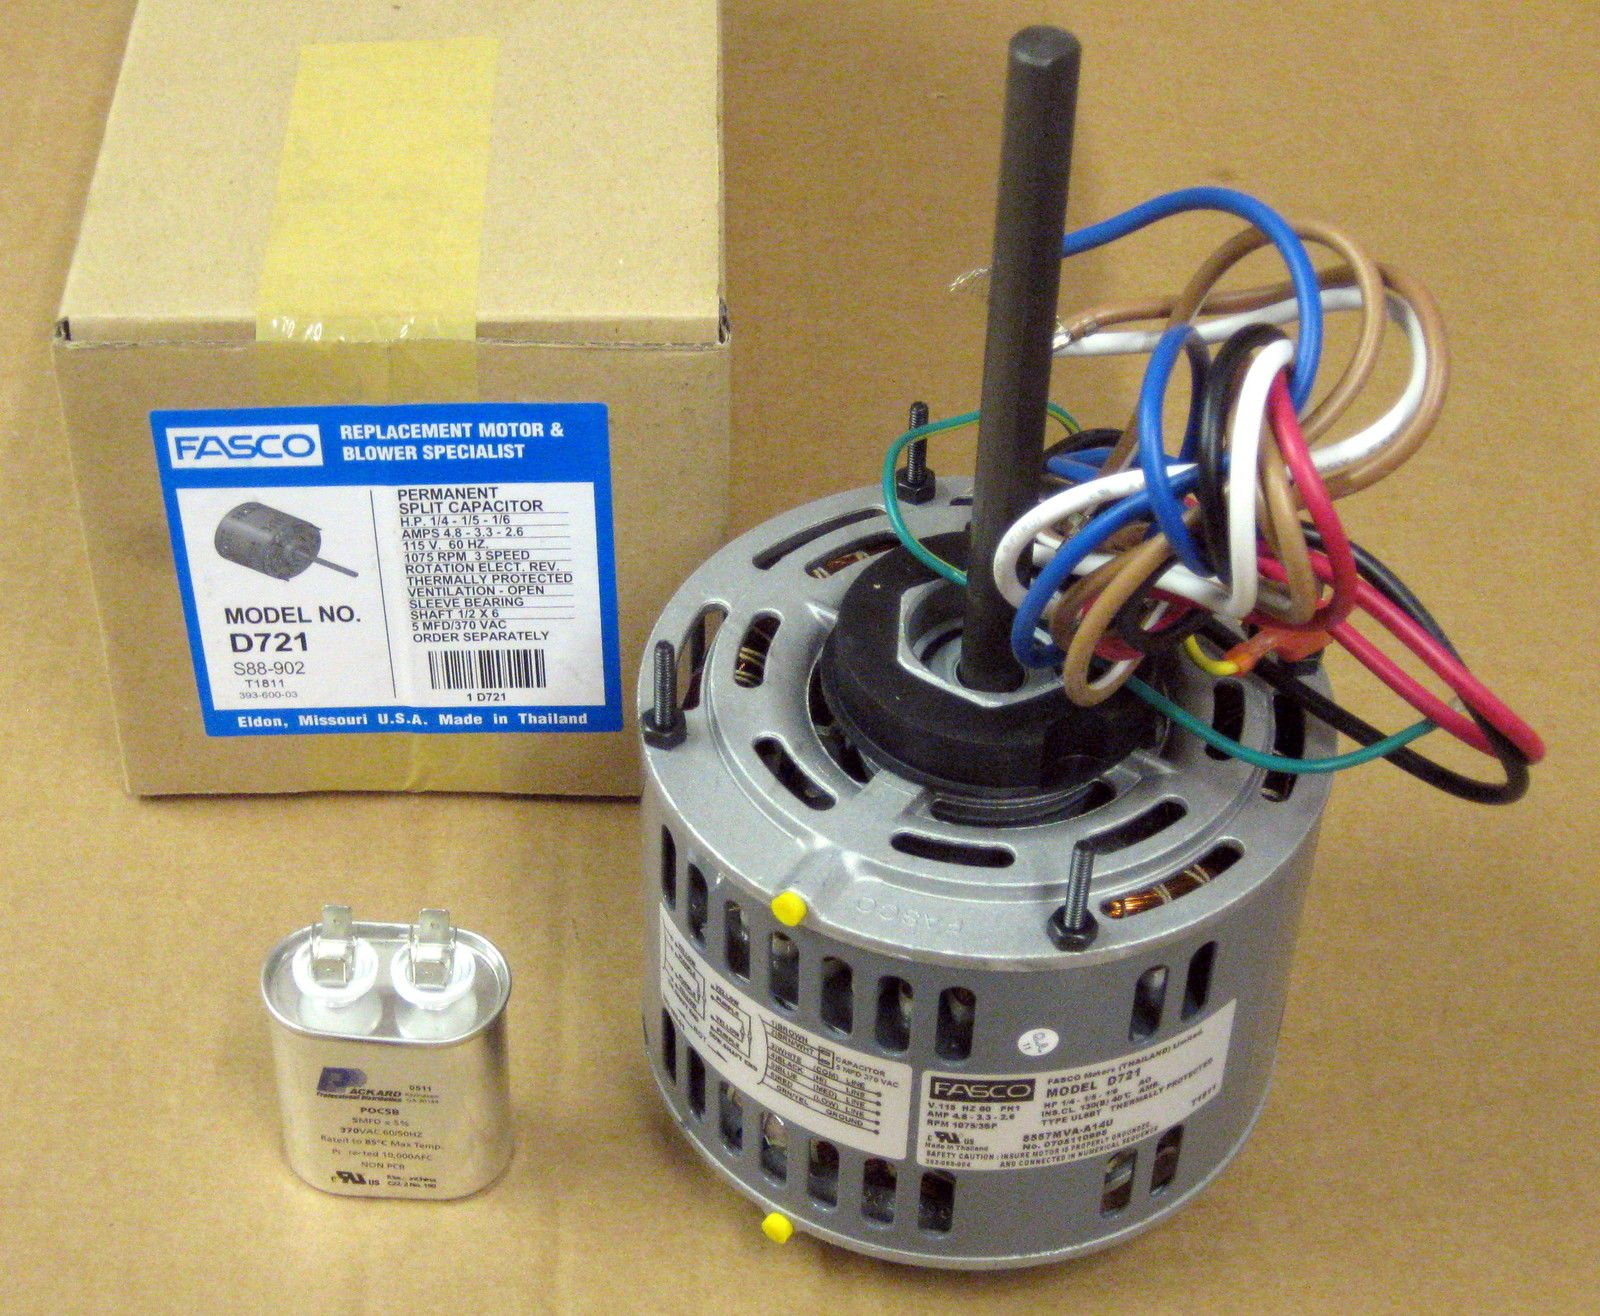 hight resolution of d721 5 fasco 1 4 hp 1075 115 v 3 speed furnace blower fan motor w capacitor